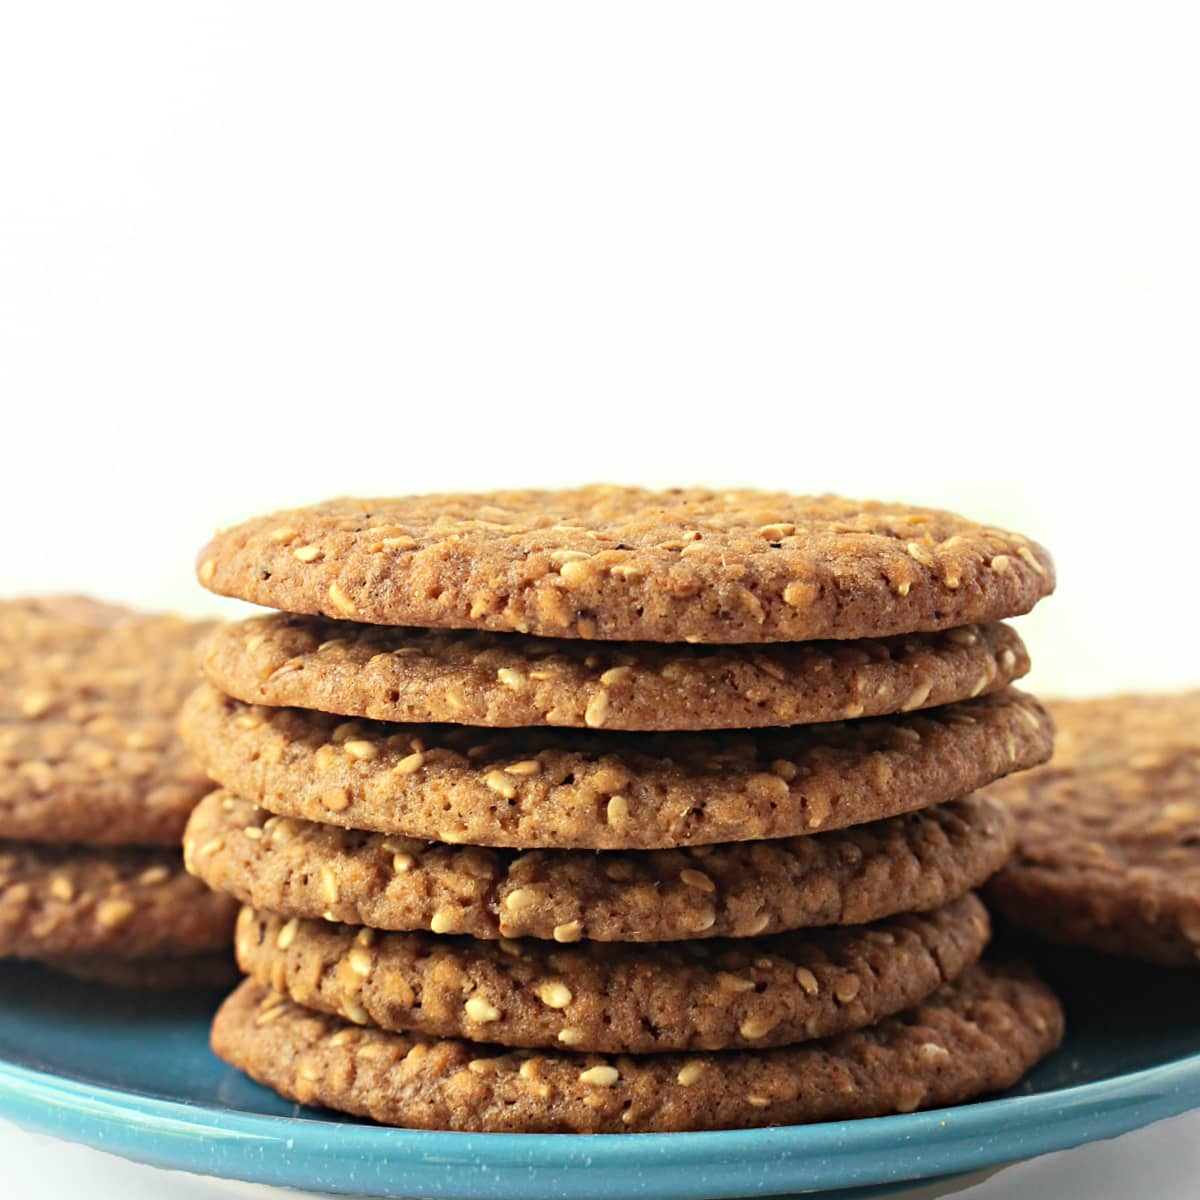 Stack of thin sesame cookies on a blue plate.